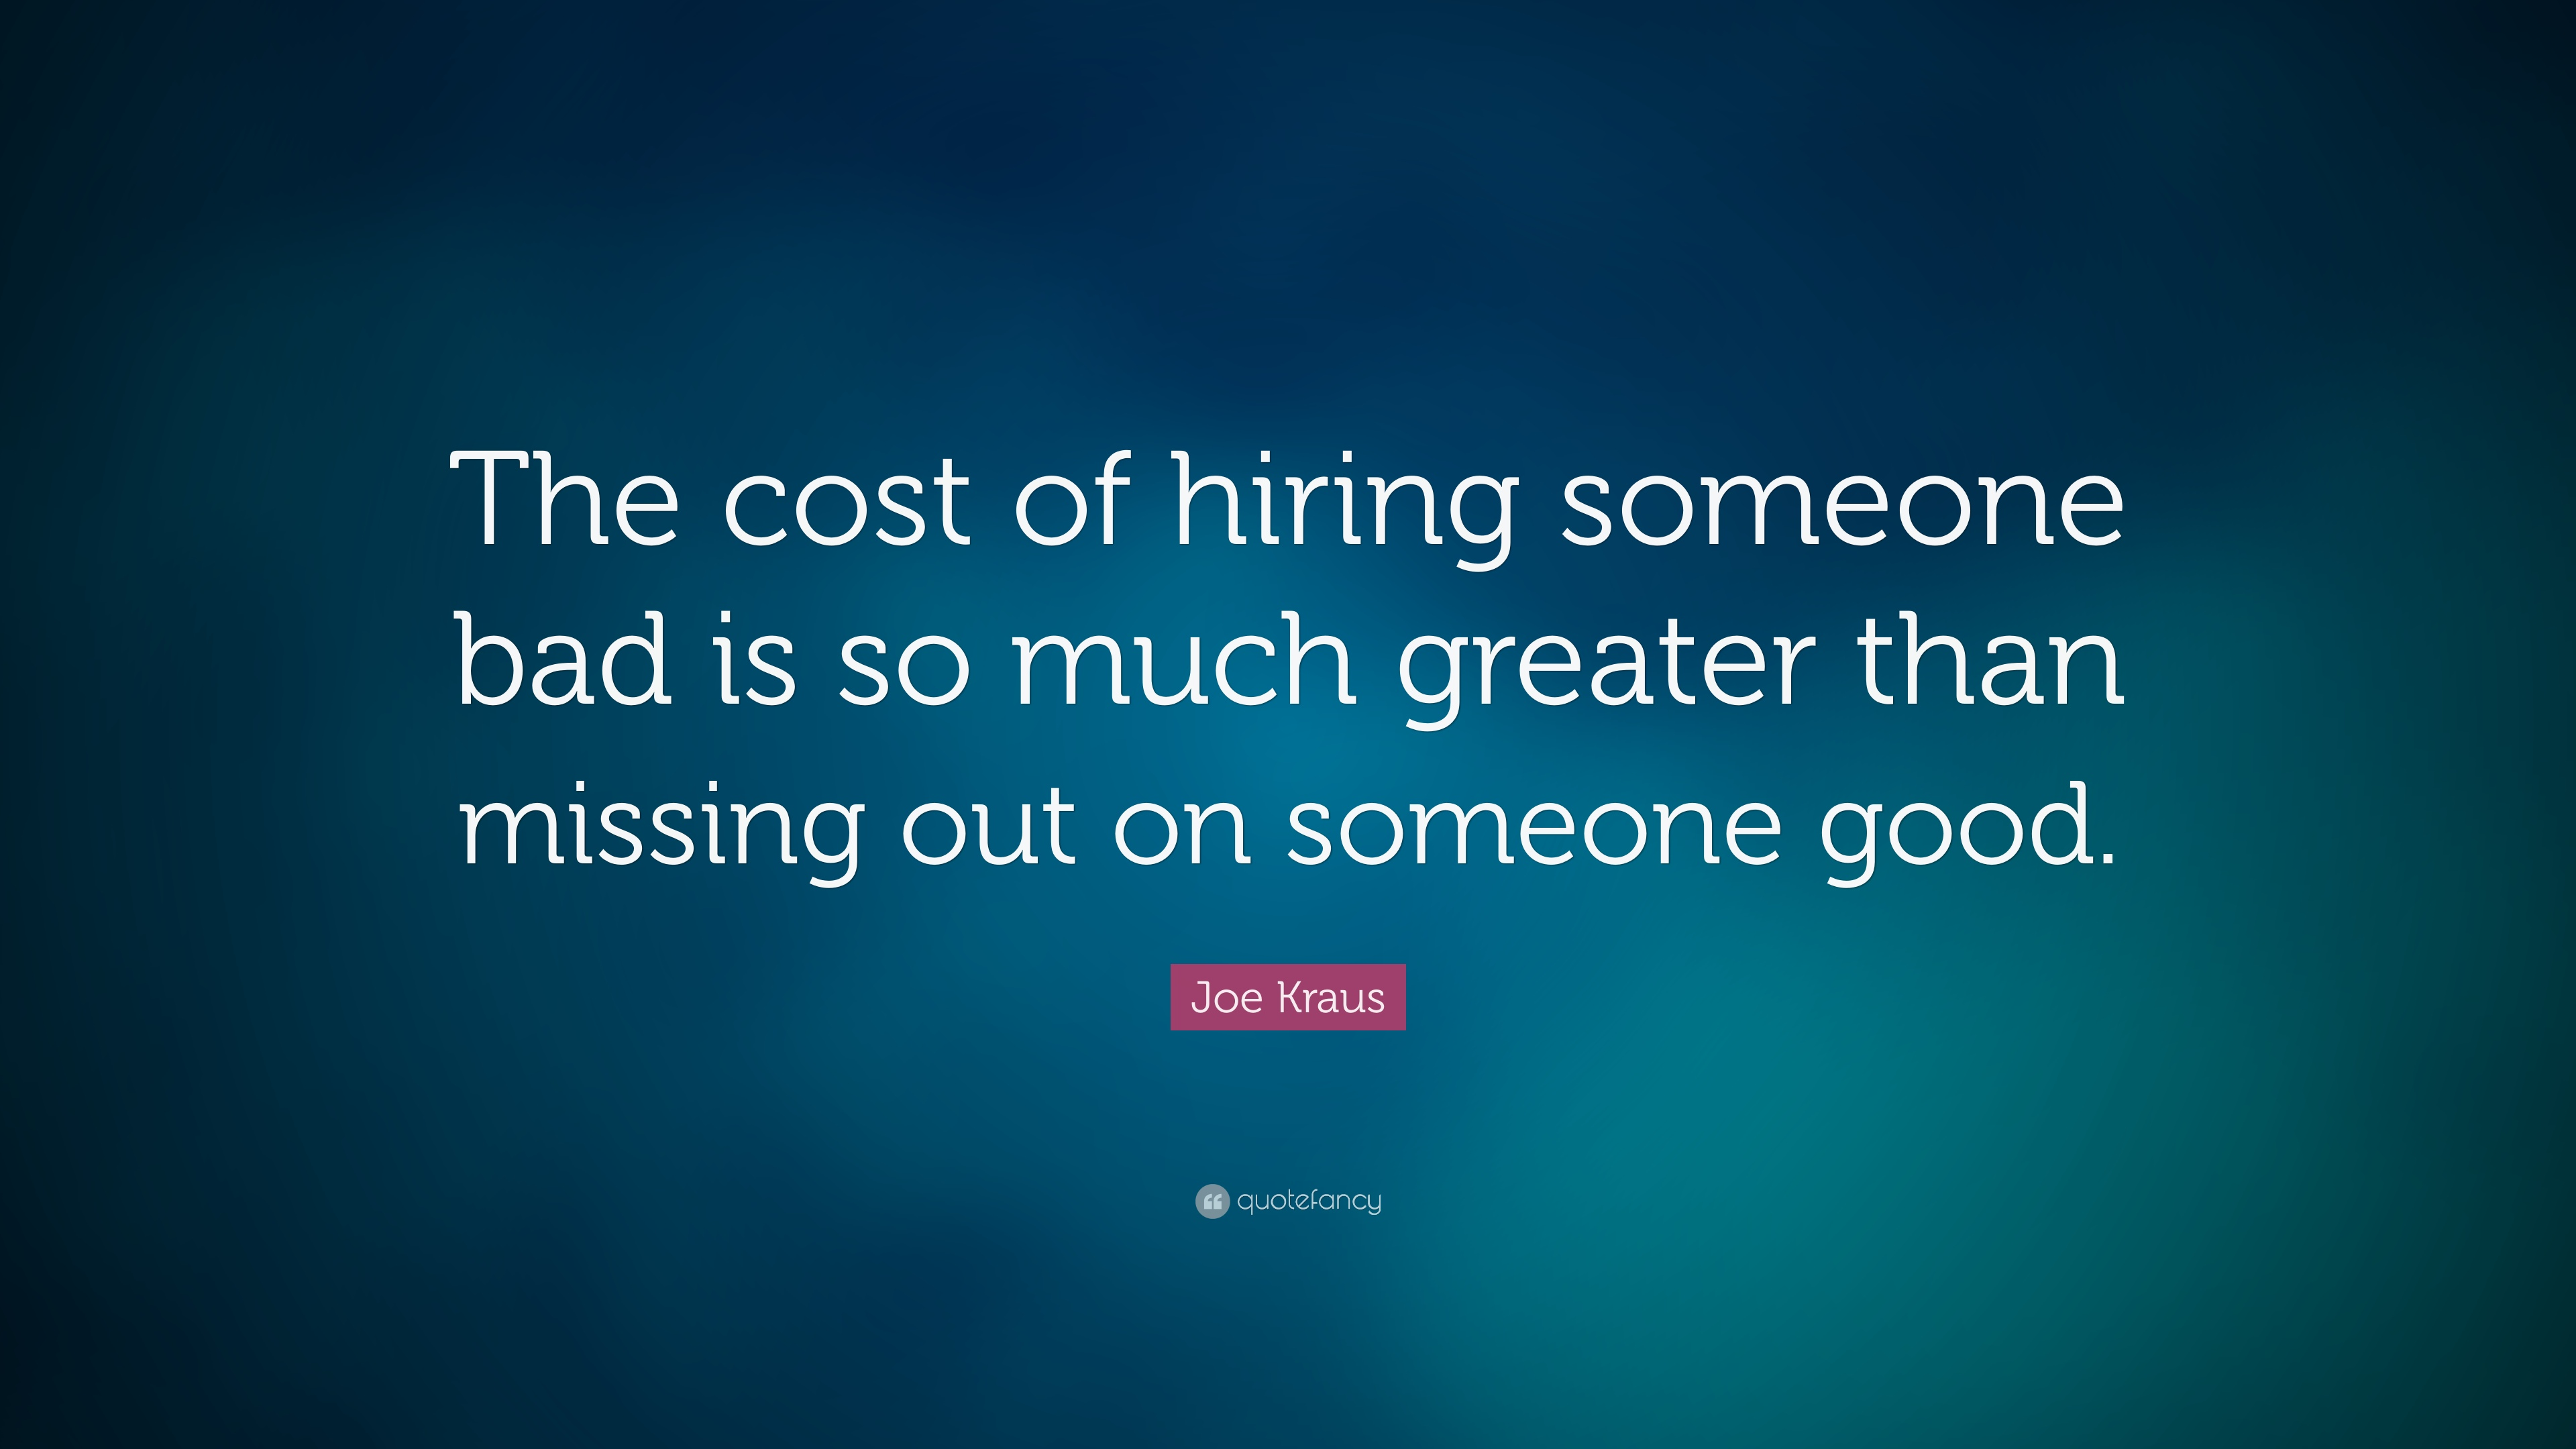 joe kraus quote the cost of hiring someone bad is so